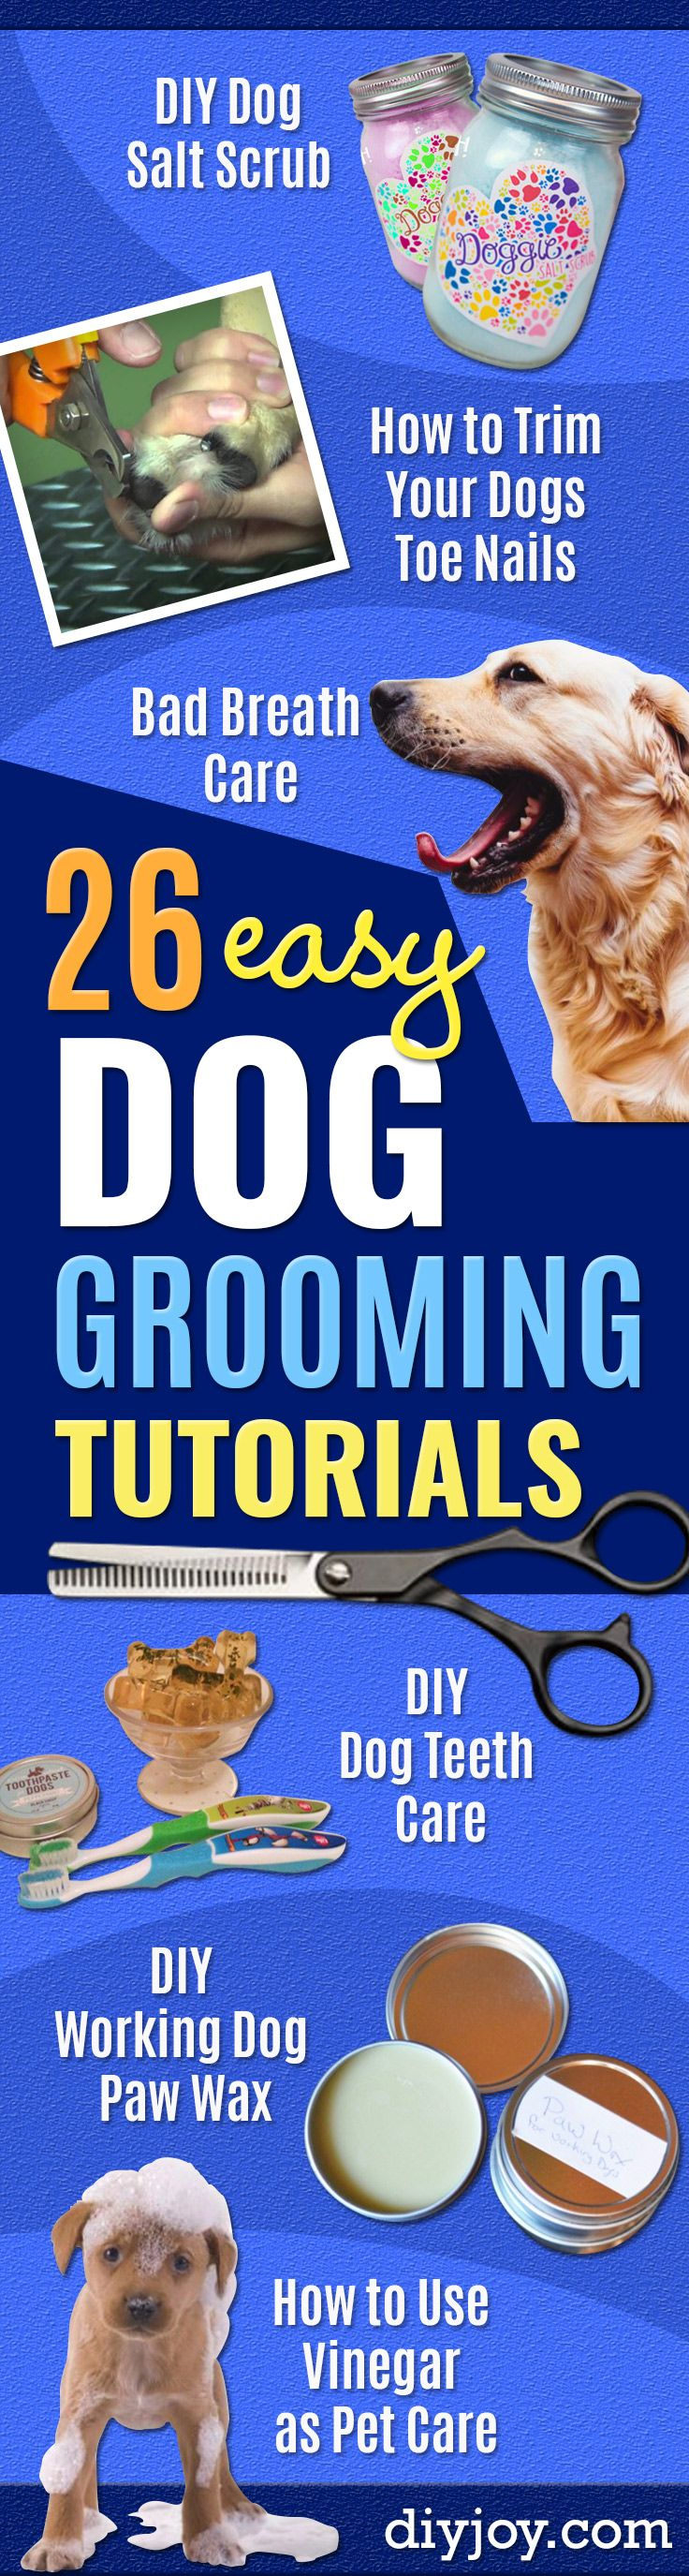 DIY Dog Grooming Tutorials - Cool and Easy Ways to Wash, Groom and Style Your Pets Fur - Trim Toenails, Brush Teeth, Bath, Trim and Clip Dogs Fur - Hair - Remove Fleas and Anti Itch - Save Money At The Groomer By Learning How To Do These Things At Home http://diyjoy.com/diy-dog-grooming